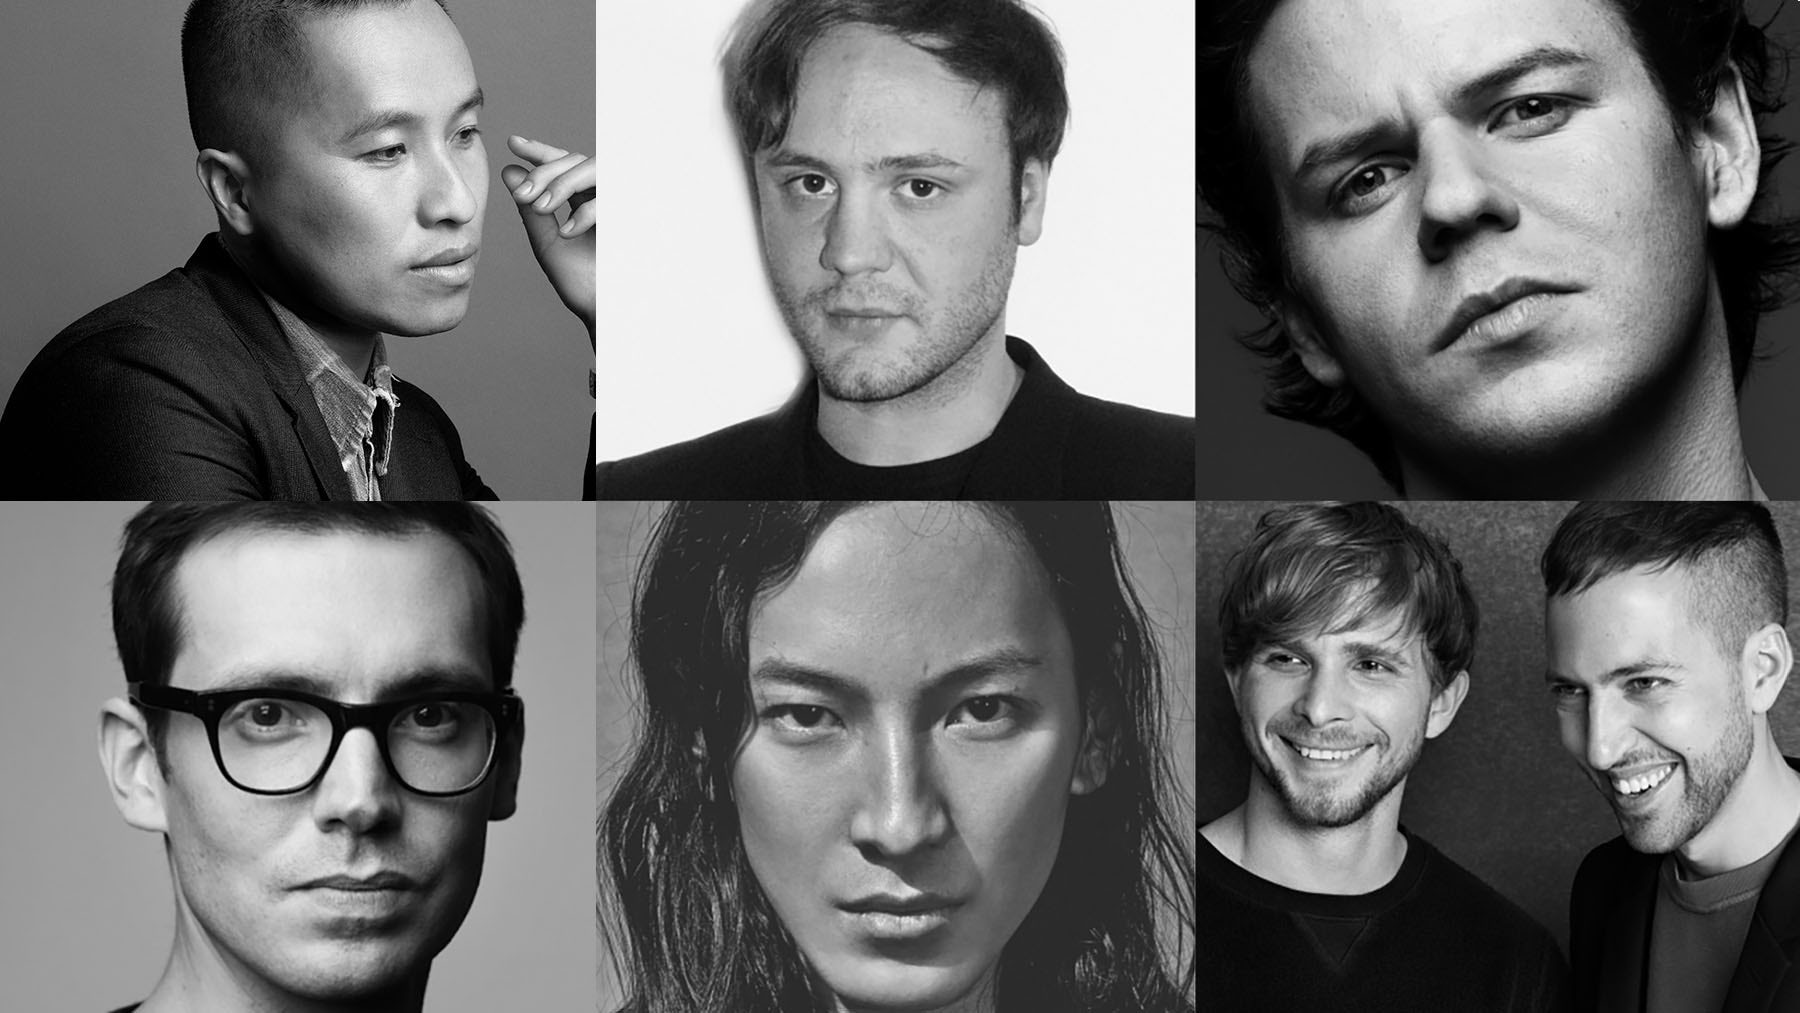 From left: Phillip Lim, Nicholas Kirkwood, Christopher Kane, Erdem Moralioglu, Alexander Wang, Peter Pilotto and Christopher de Vos | Source: Courtesy